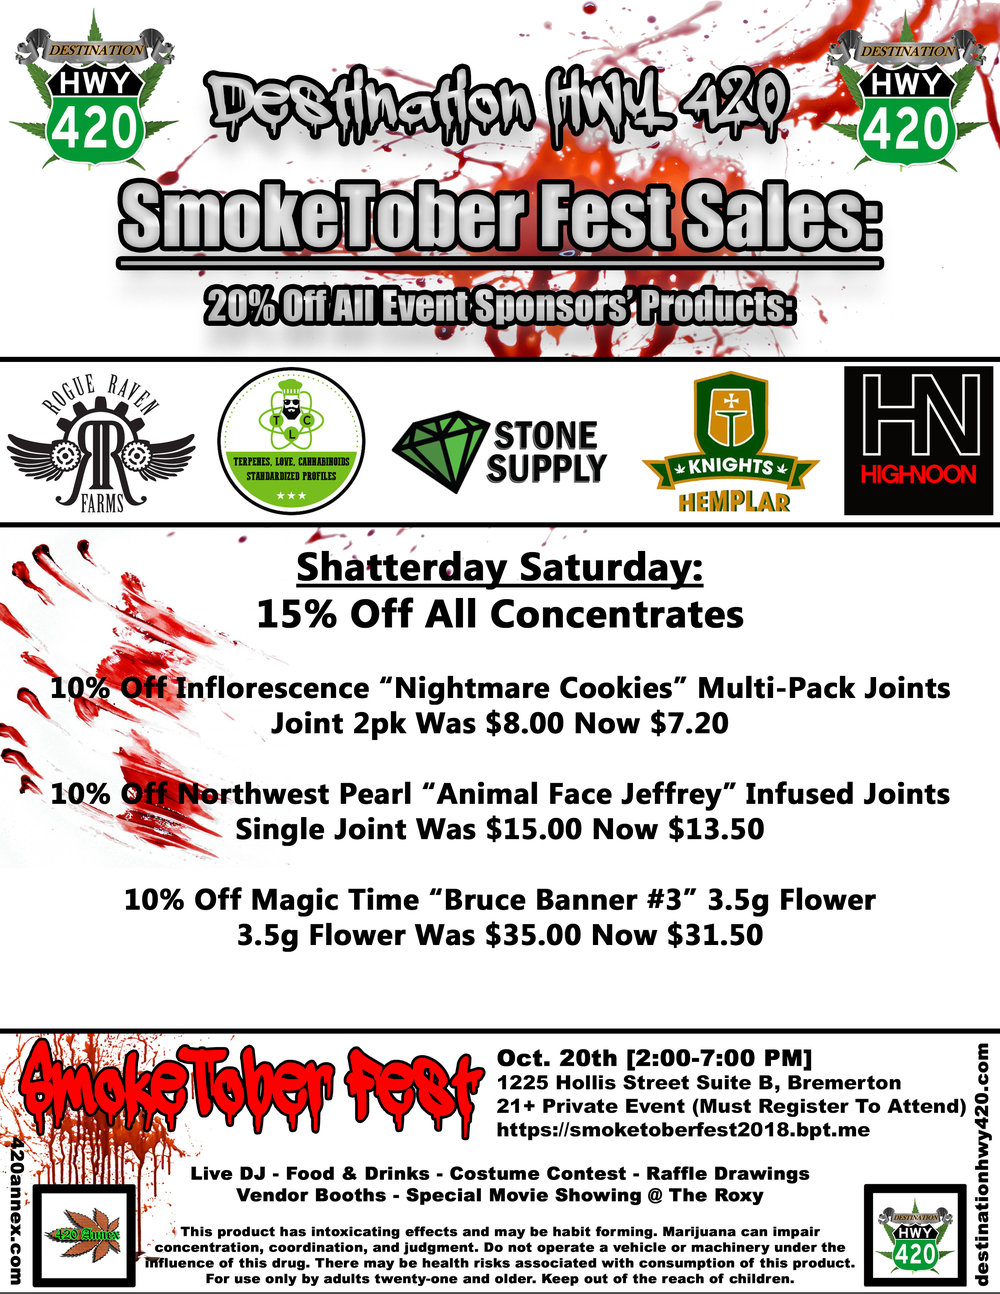 "Here are the sales for SmokeTober Fest at Destination HWY 420 in East Bremerton. Make sure to check out our sales on all of the products from our marijuana producers and processors sponsoring the event. Join us this Saturday for music, food, drinks, costume contests, raffle drawings, cannabis vendor booths, and a special movie showing at the Historic Roxy in downtown Bremerton. We look forward to seeing you all tomorrow at Kitsap County's first ever ""SmokeTober Fest""!"